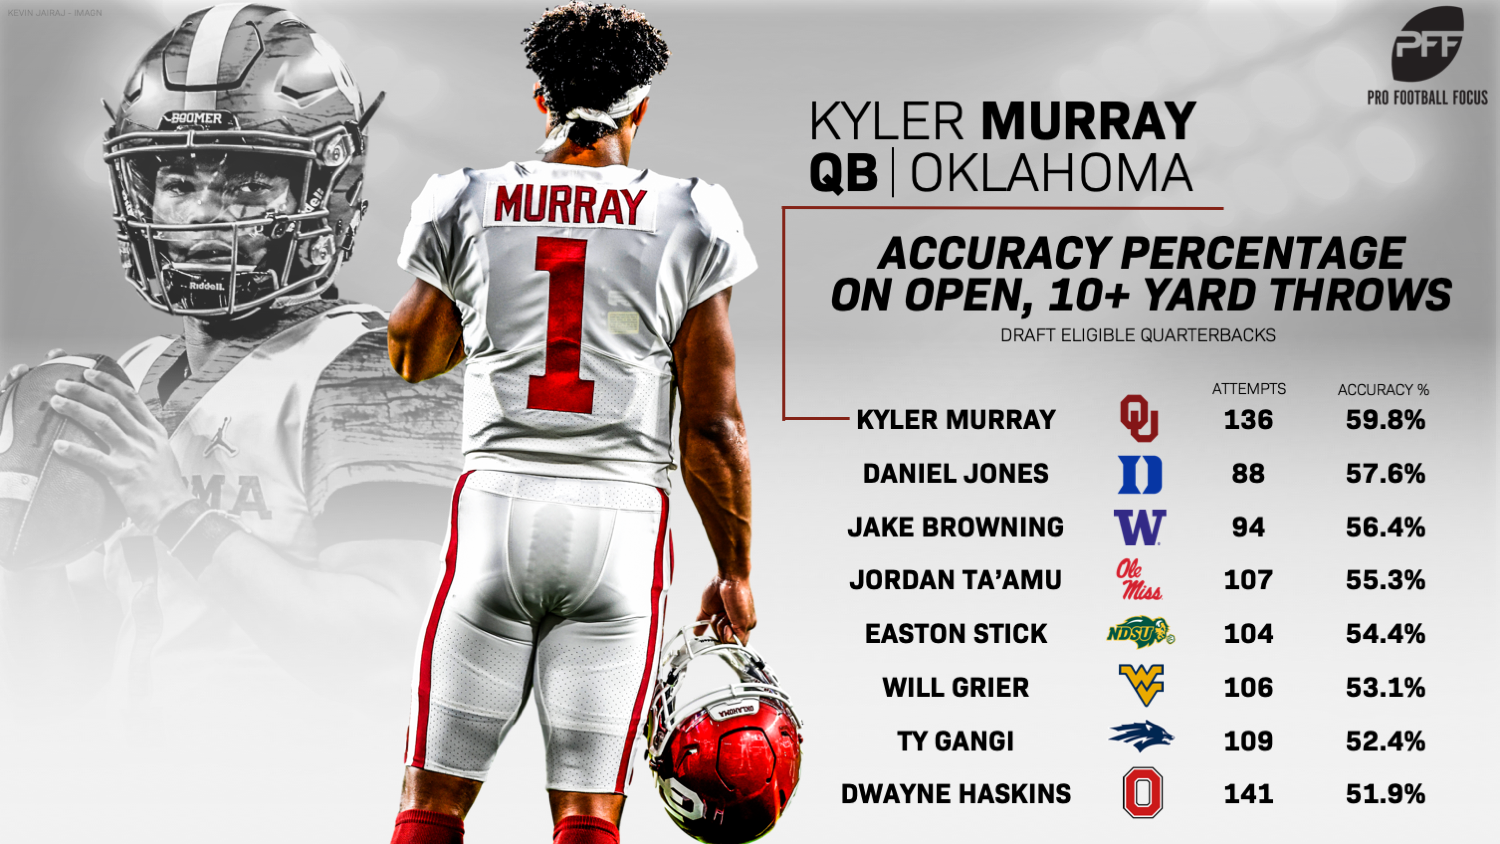 Why Kyler Murray is the top player on the PFF 2019 NFL Draft Board